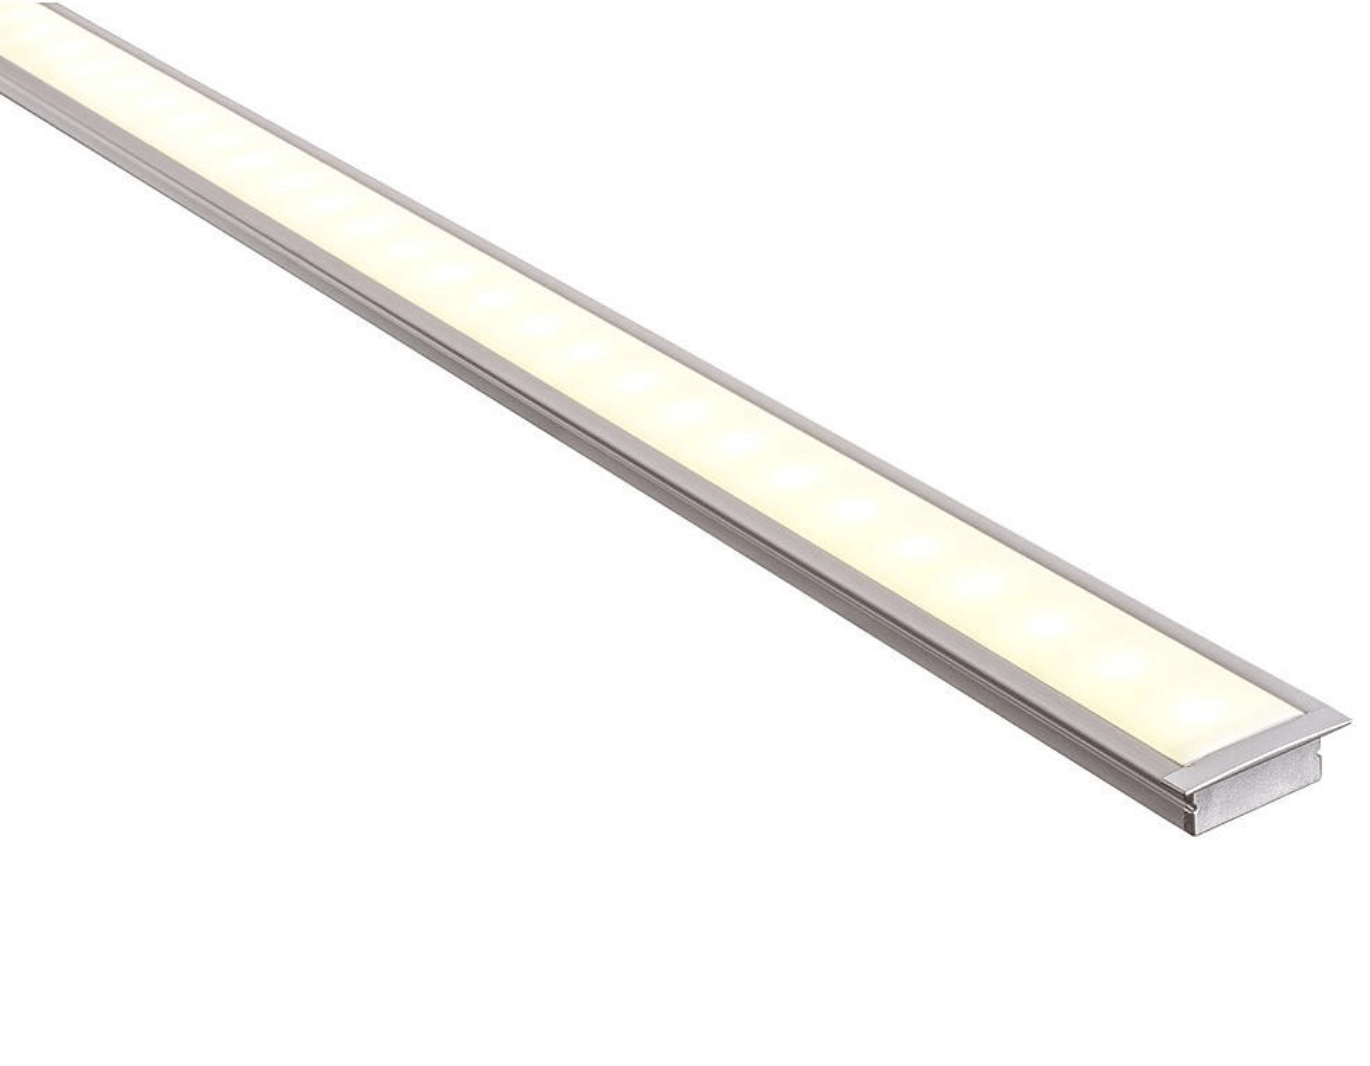 Profiles Recessed Profile - Shallow Square Winged - HV9695-2810 lighting shops lighting stores LED lights  lighting designer